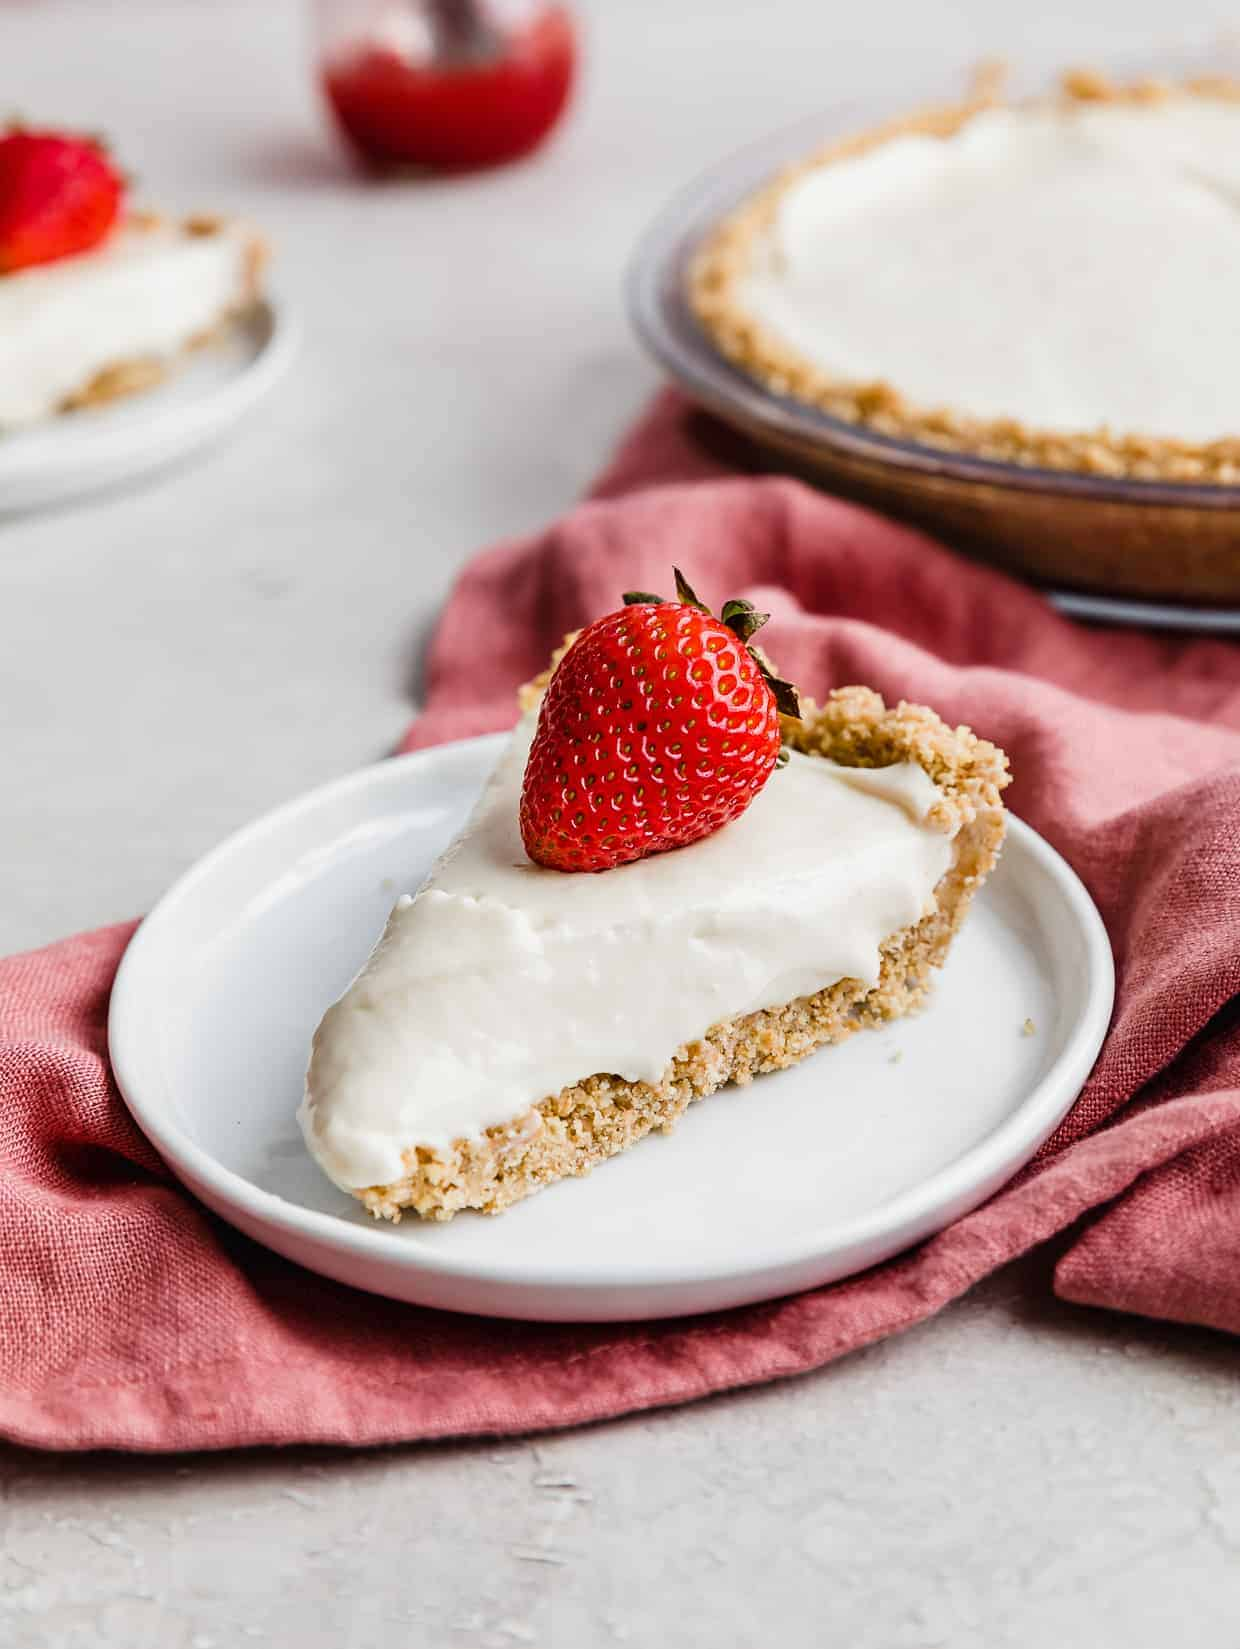 A slice of no-bake cheesecake on a white plate topped with a red strawberry.